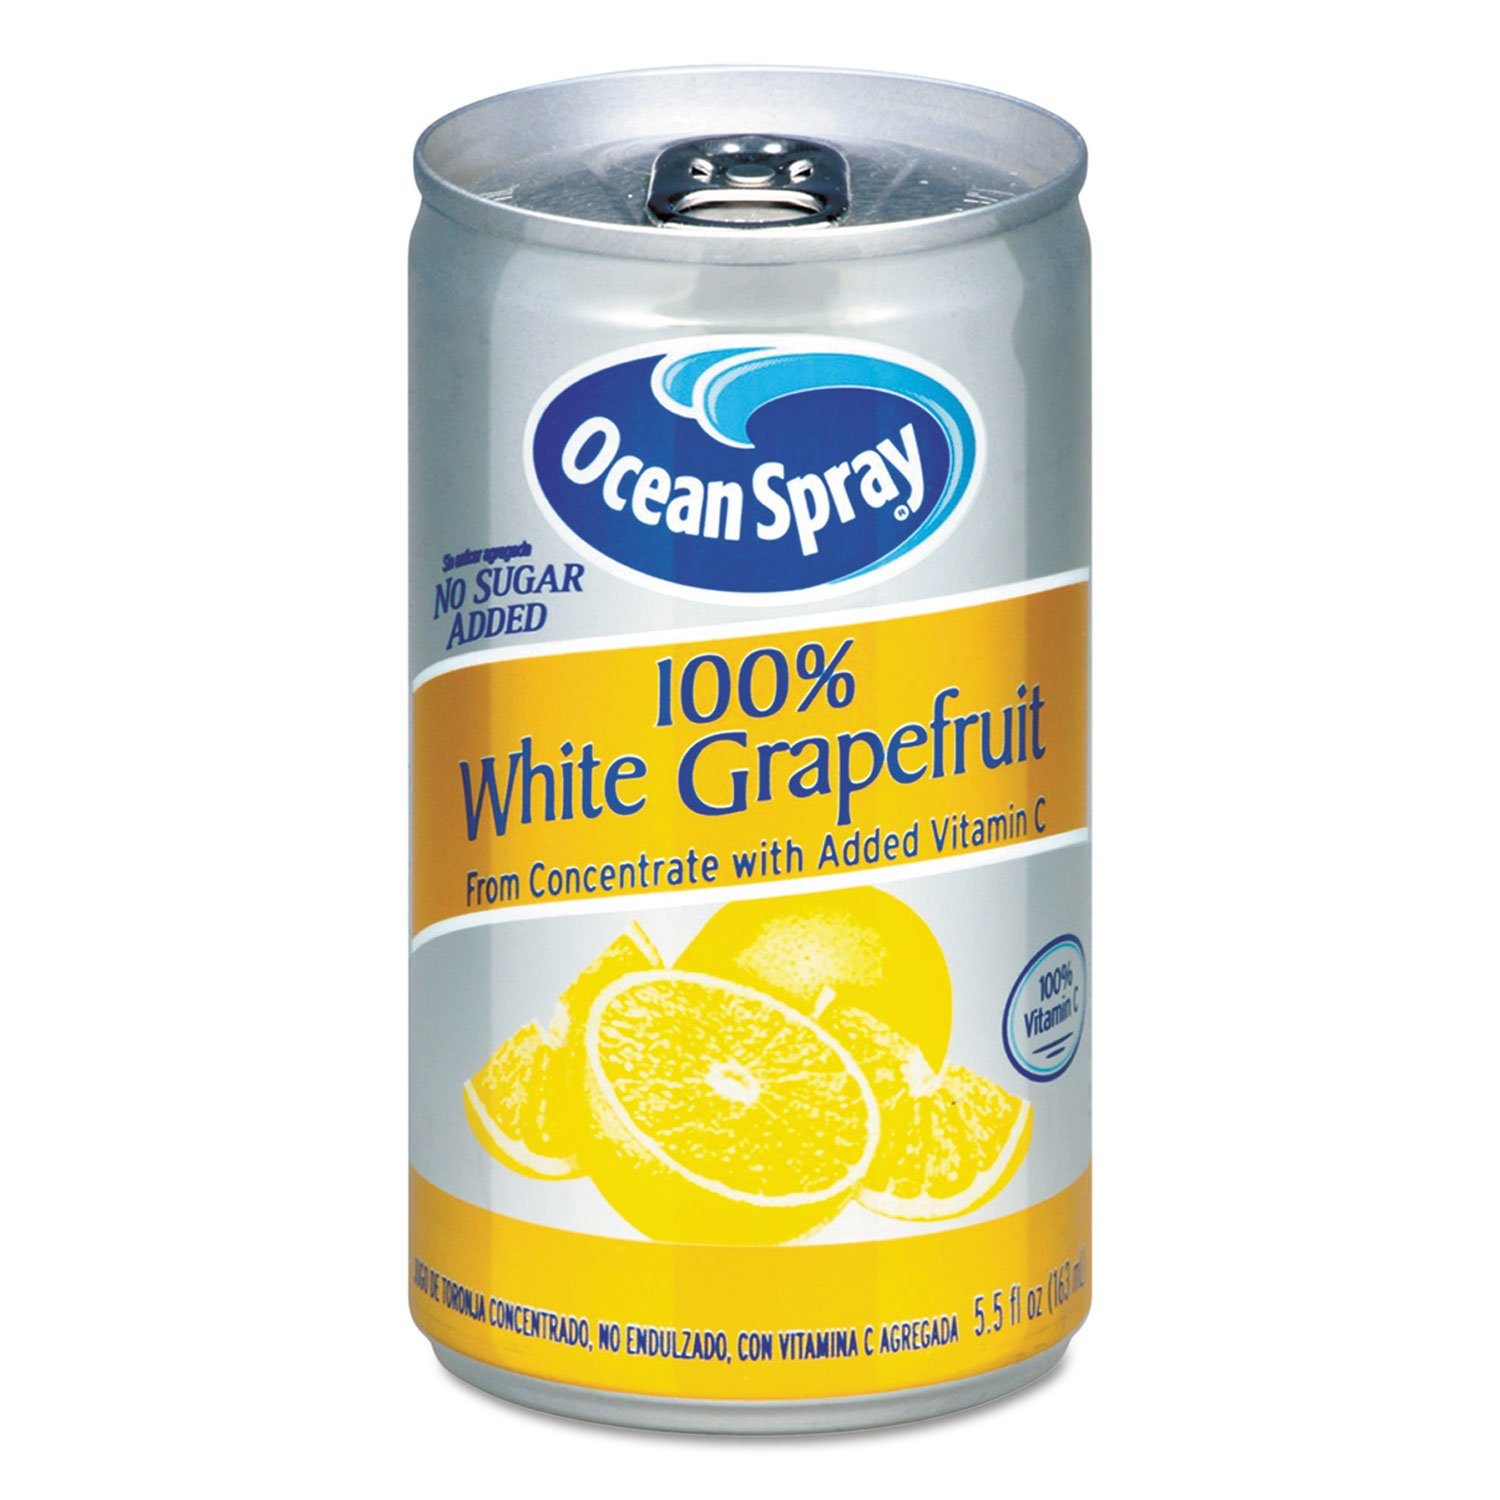 Ocean Spray 00866 100% Juice, White Grapefruit, 5 1/2 oz Can by Ocean Spray